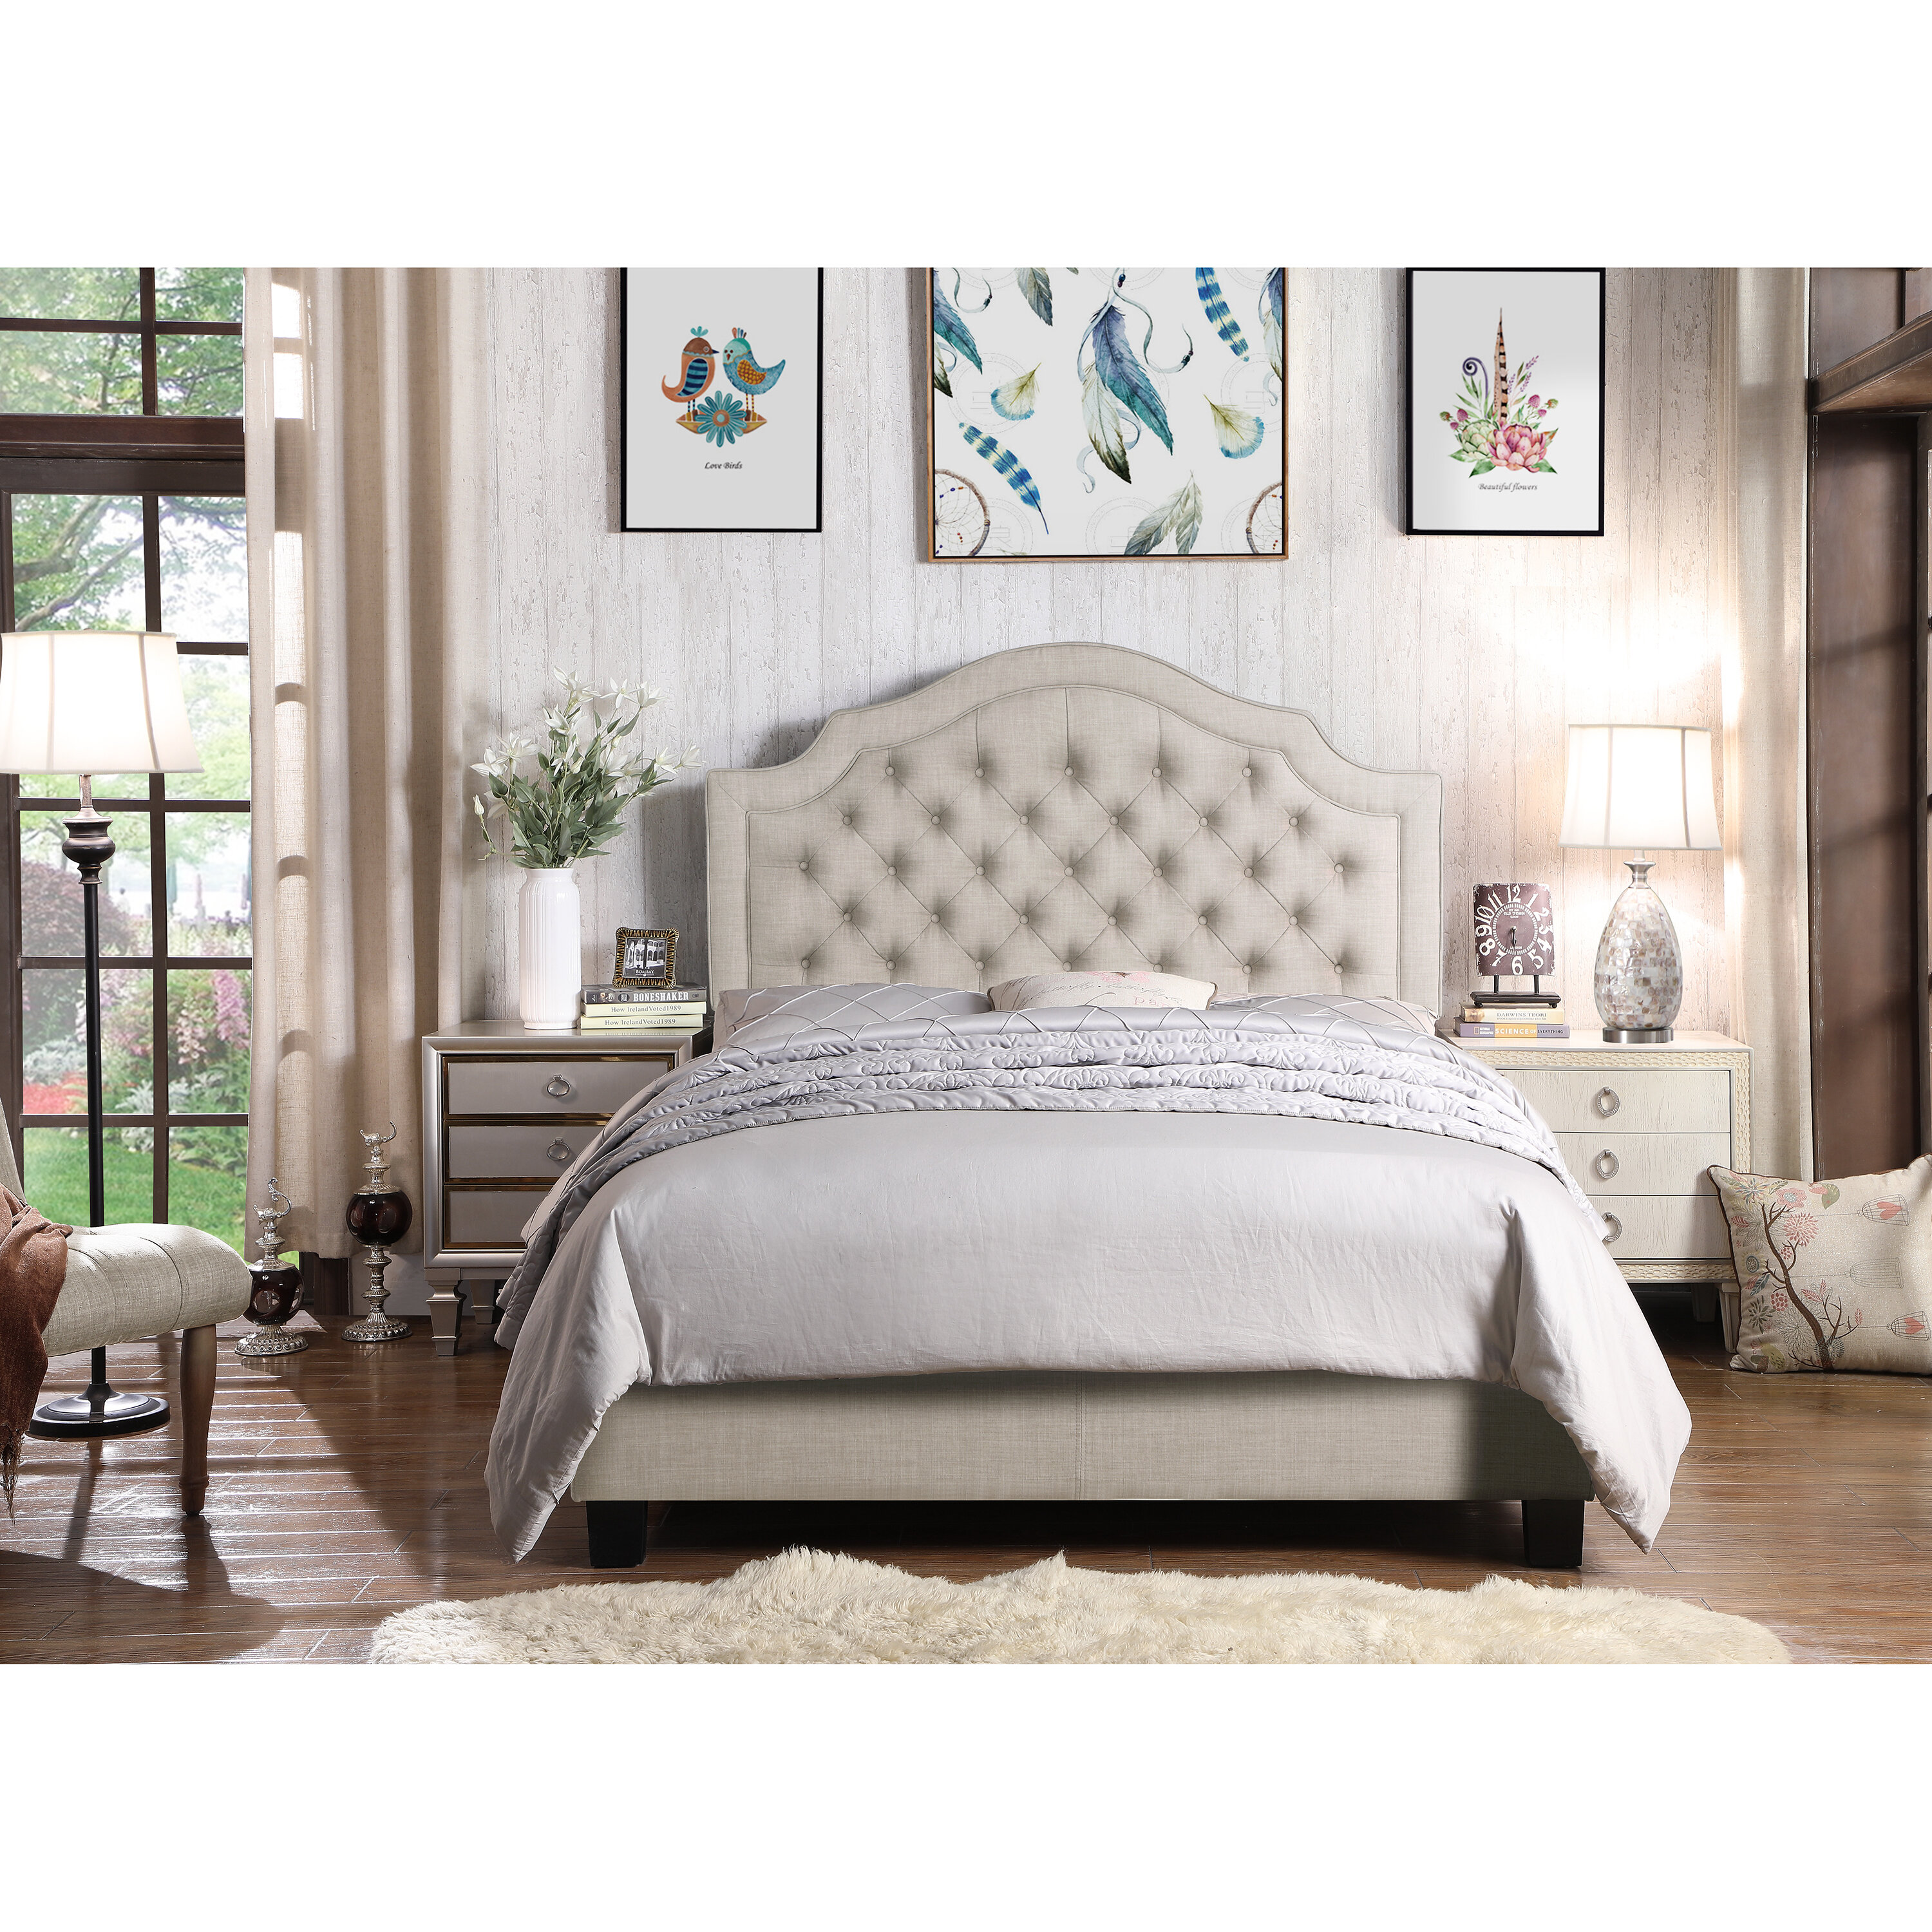 Andover Mills Swanley Tufted Upholstered Low Profile Standard Bed Reviews Wayfair